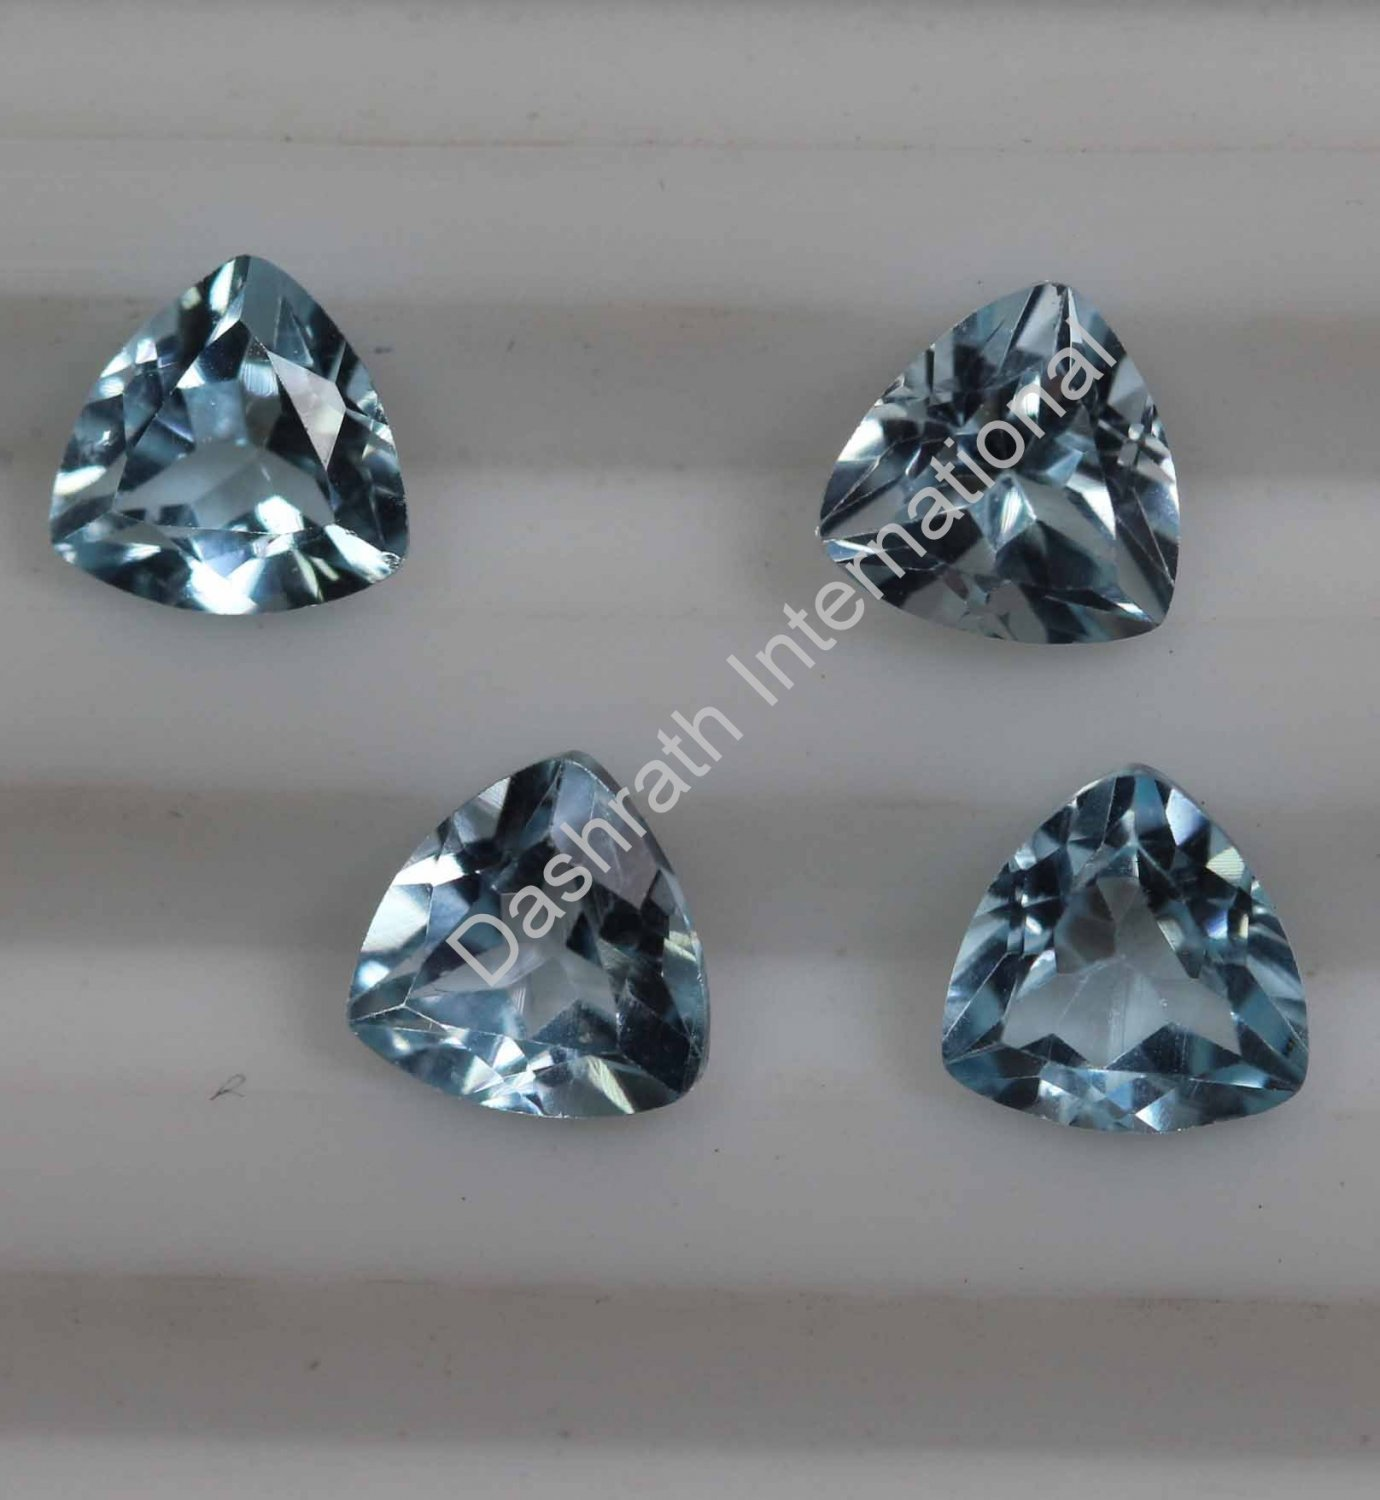 4mm Natural Sky Blue Topaz Faceted Cut Trillion 100 Pieces Lot Top Quality Loose Gemstone